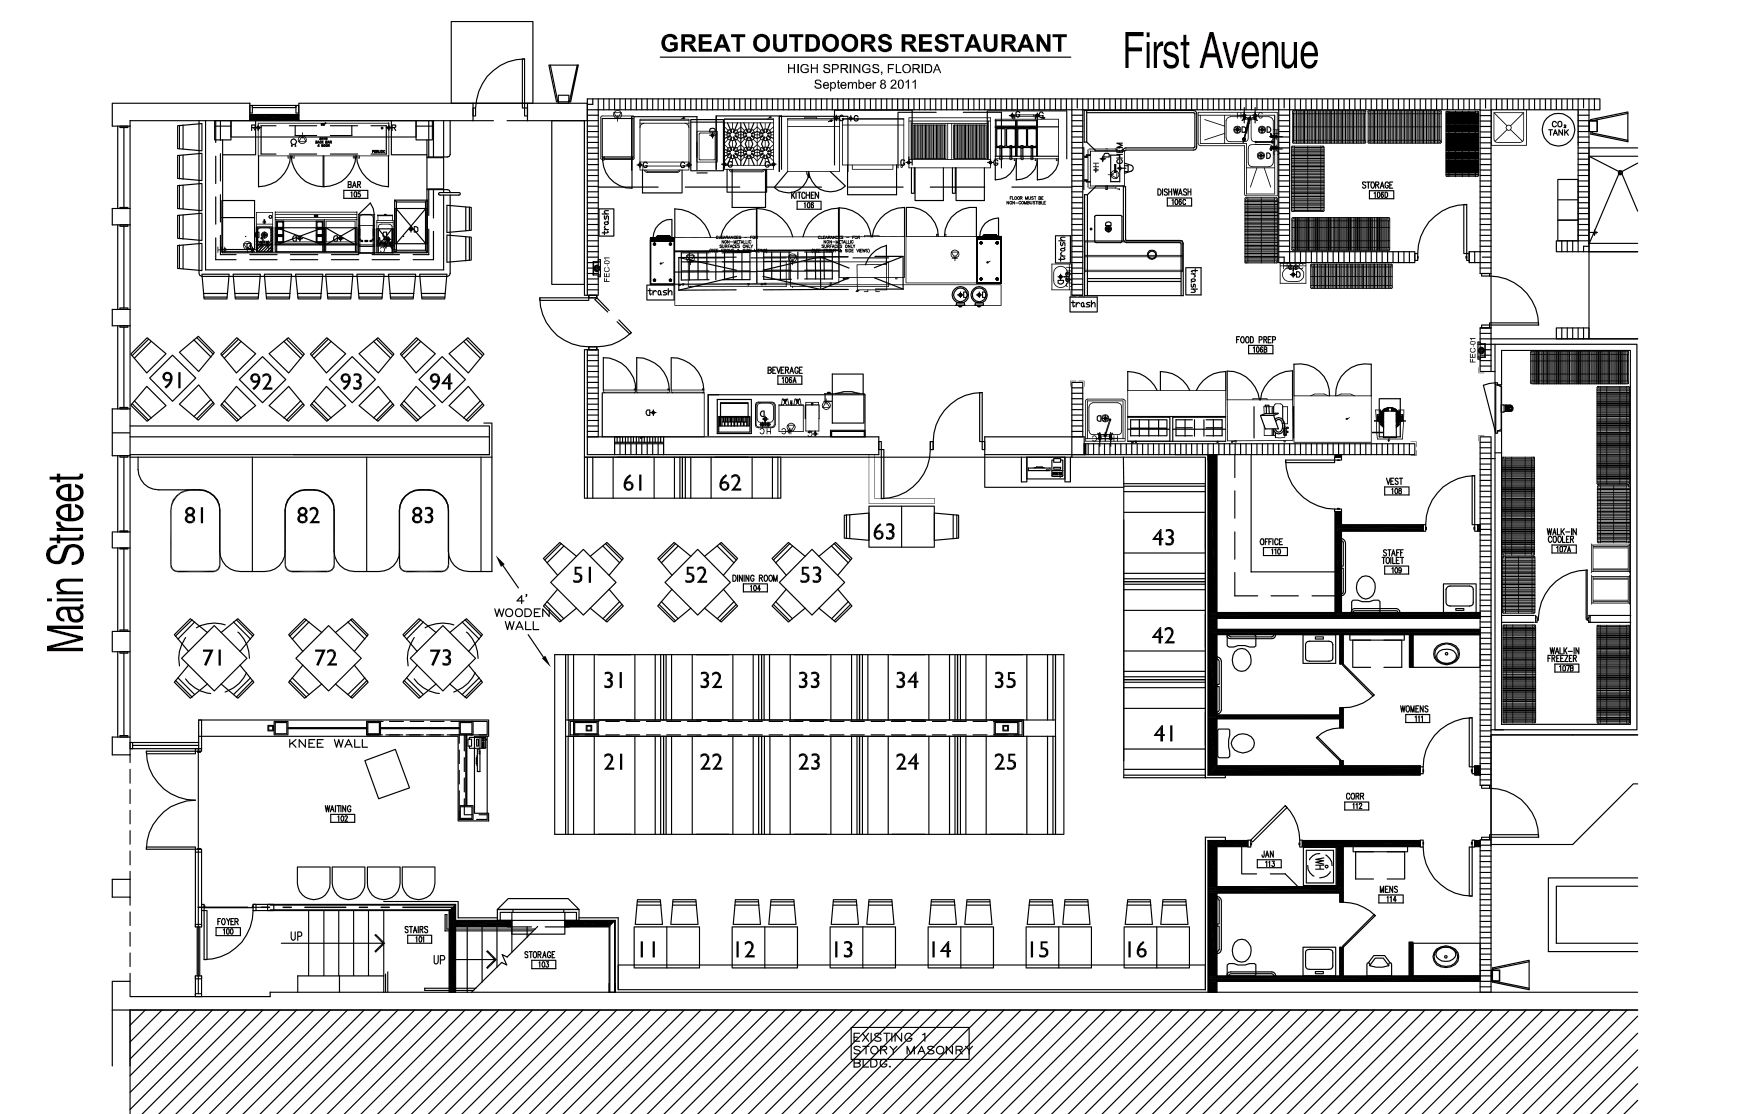 Restaurant interior design floor plan t m v i google for How to create a restaurant floor plan